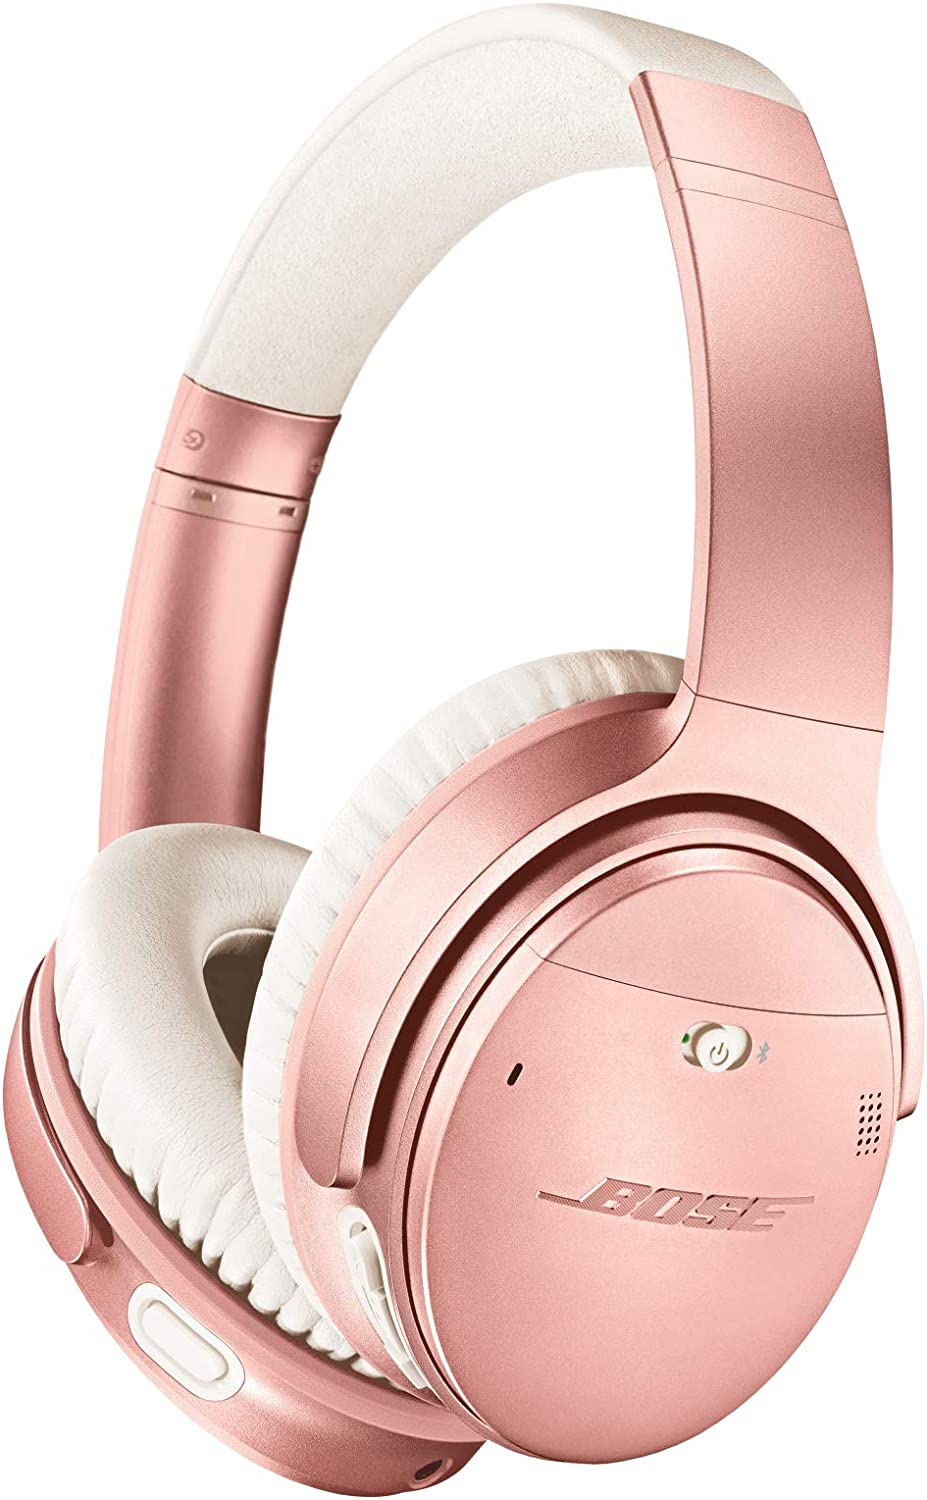 Wireless Noise-cancelling Headphones with Alexa Voice Control - Unique Gift Ideas For 17 Year Old Female Teenage Girl